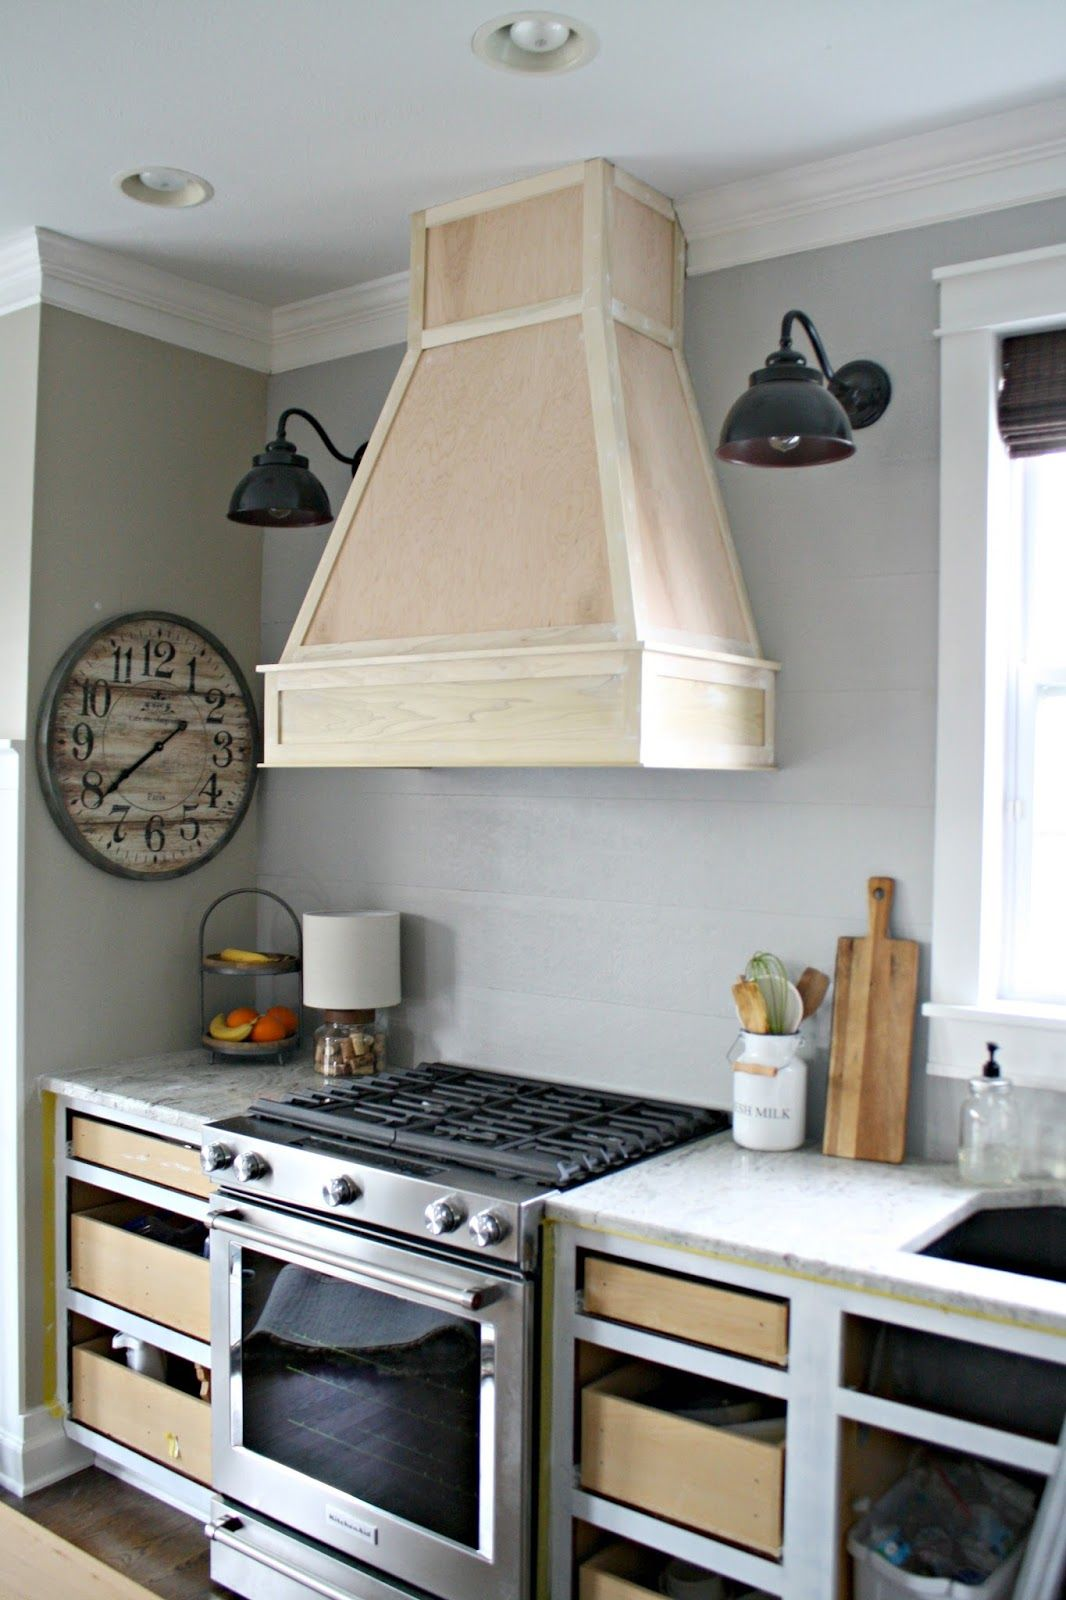 Kitchen Vent A Diy Ish Wood Vent Hood Kitchen Kitchen Vent Kitchen Hoods